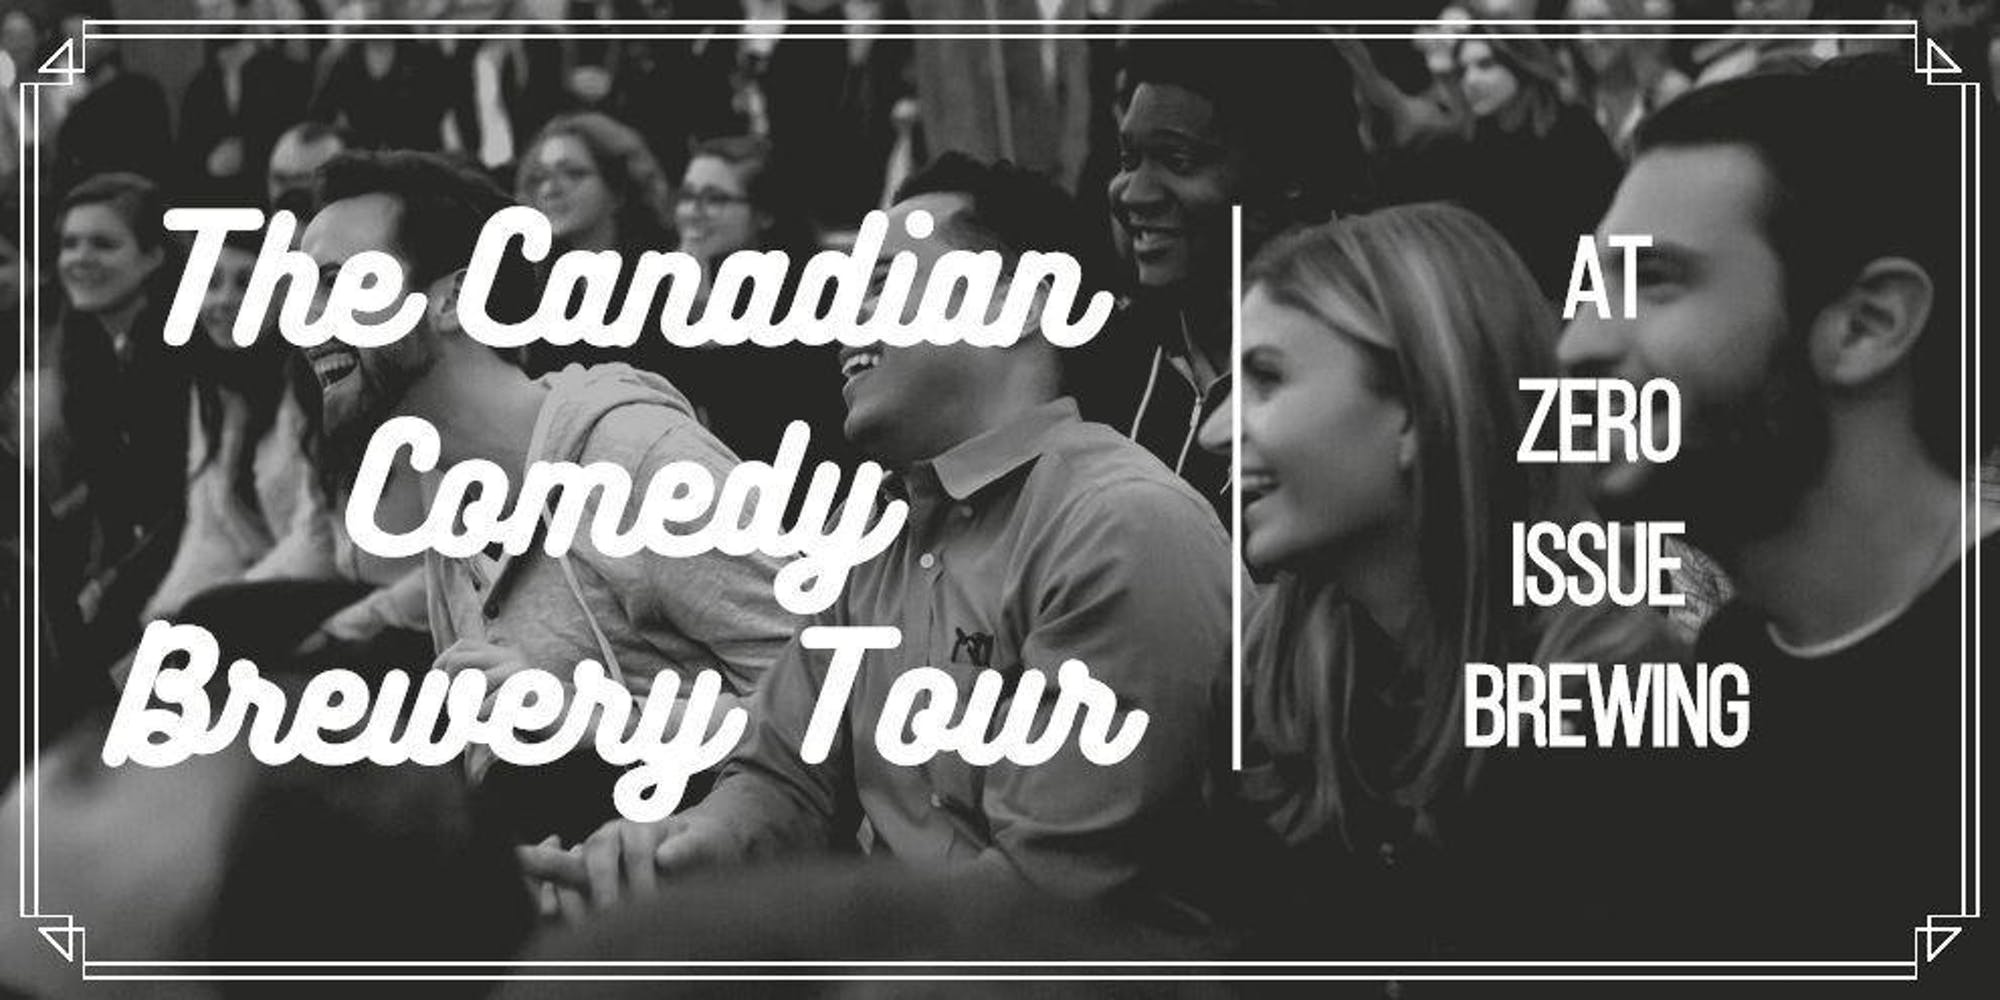 The Canadian Comedy Brewery Tour @ Zero Issue Brewing Co.